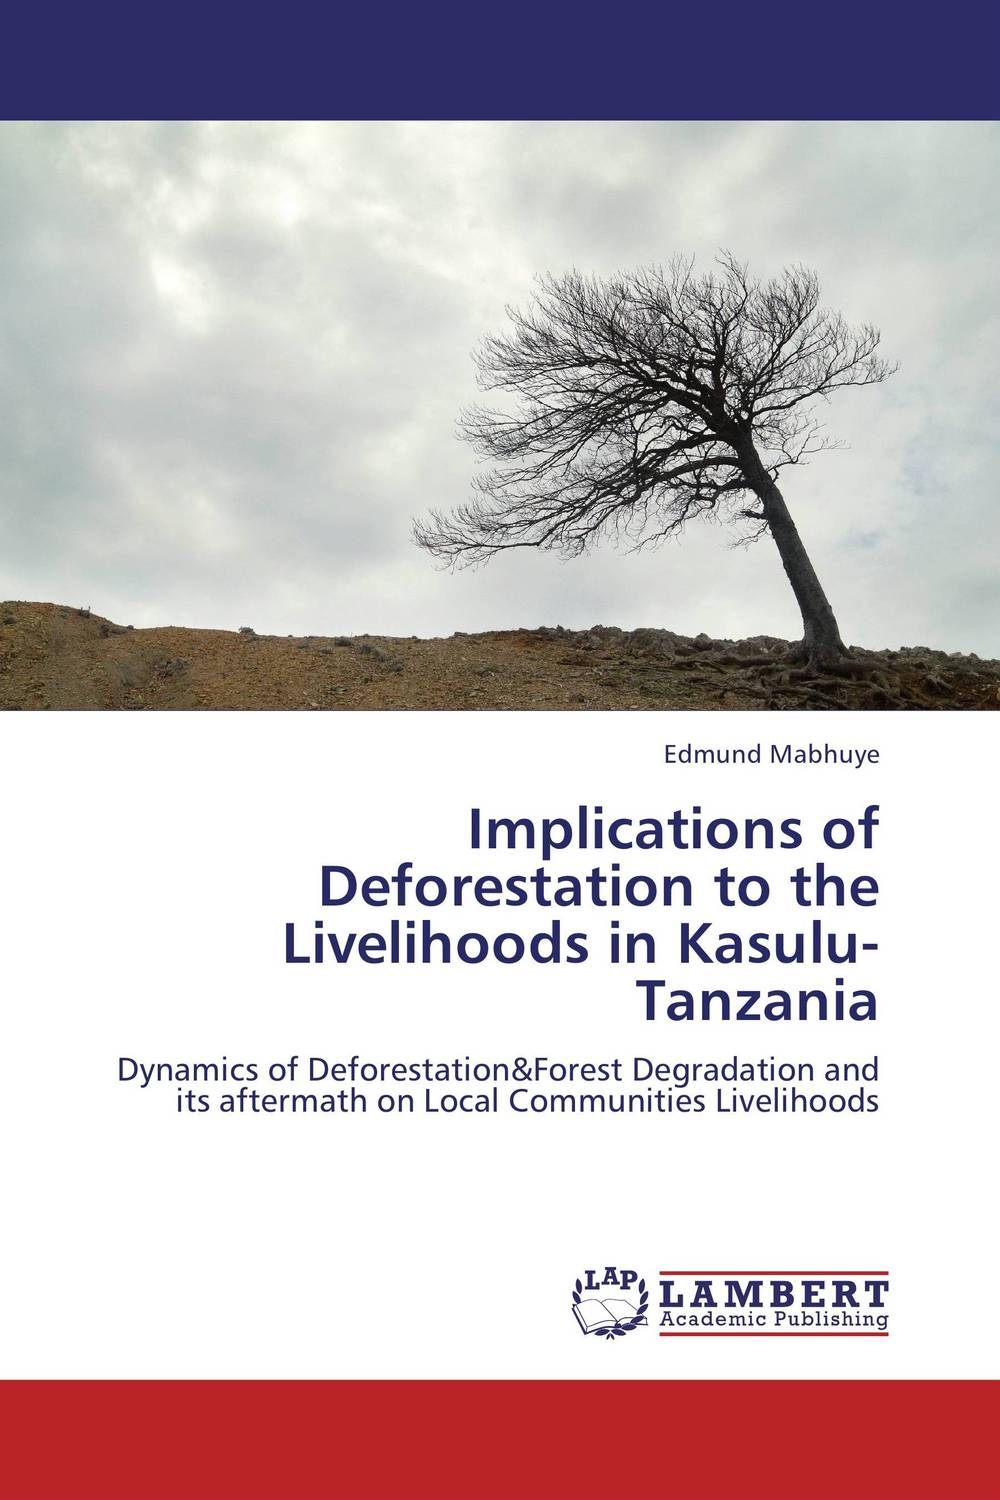 Implications of Deforestation to the Livelihoods in Kasulu-Tanzania corporate real estate management in tanzania